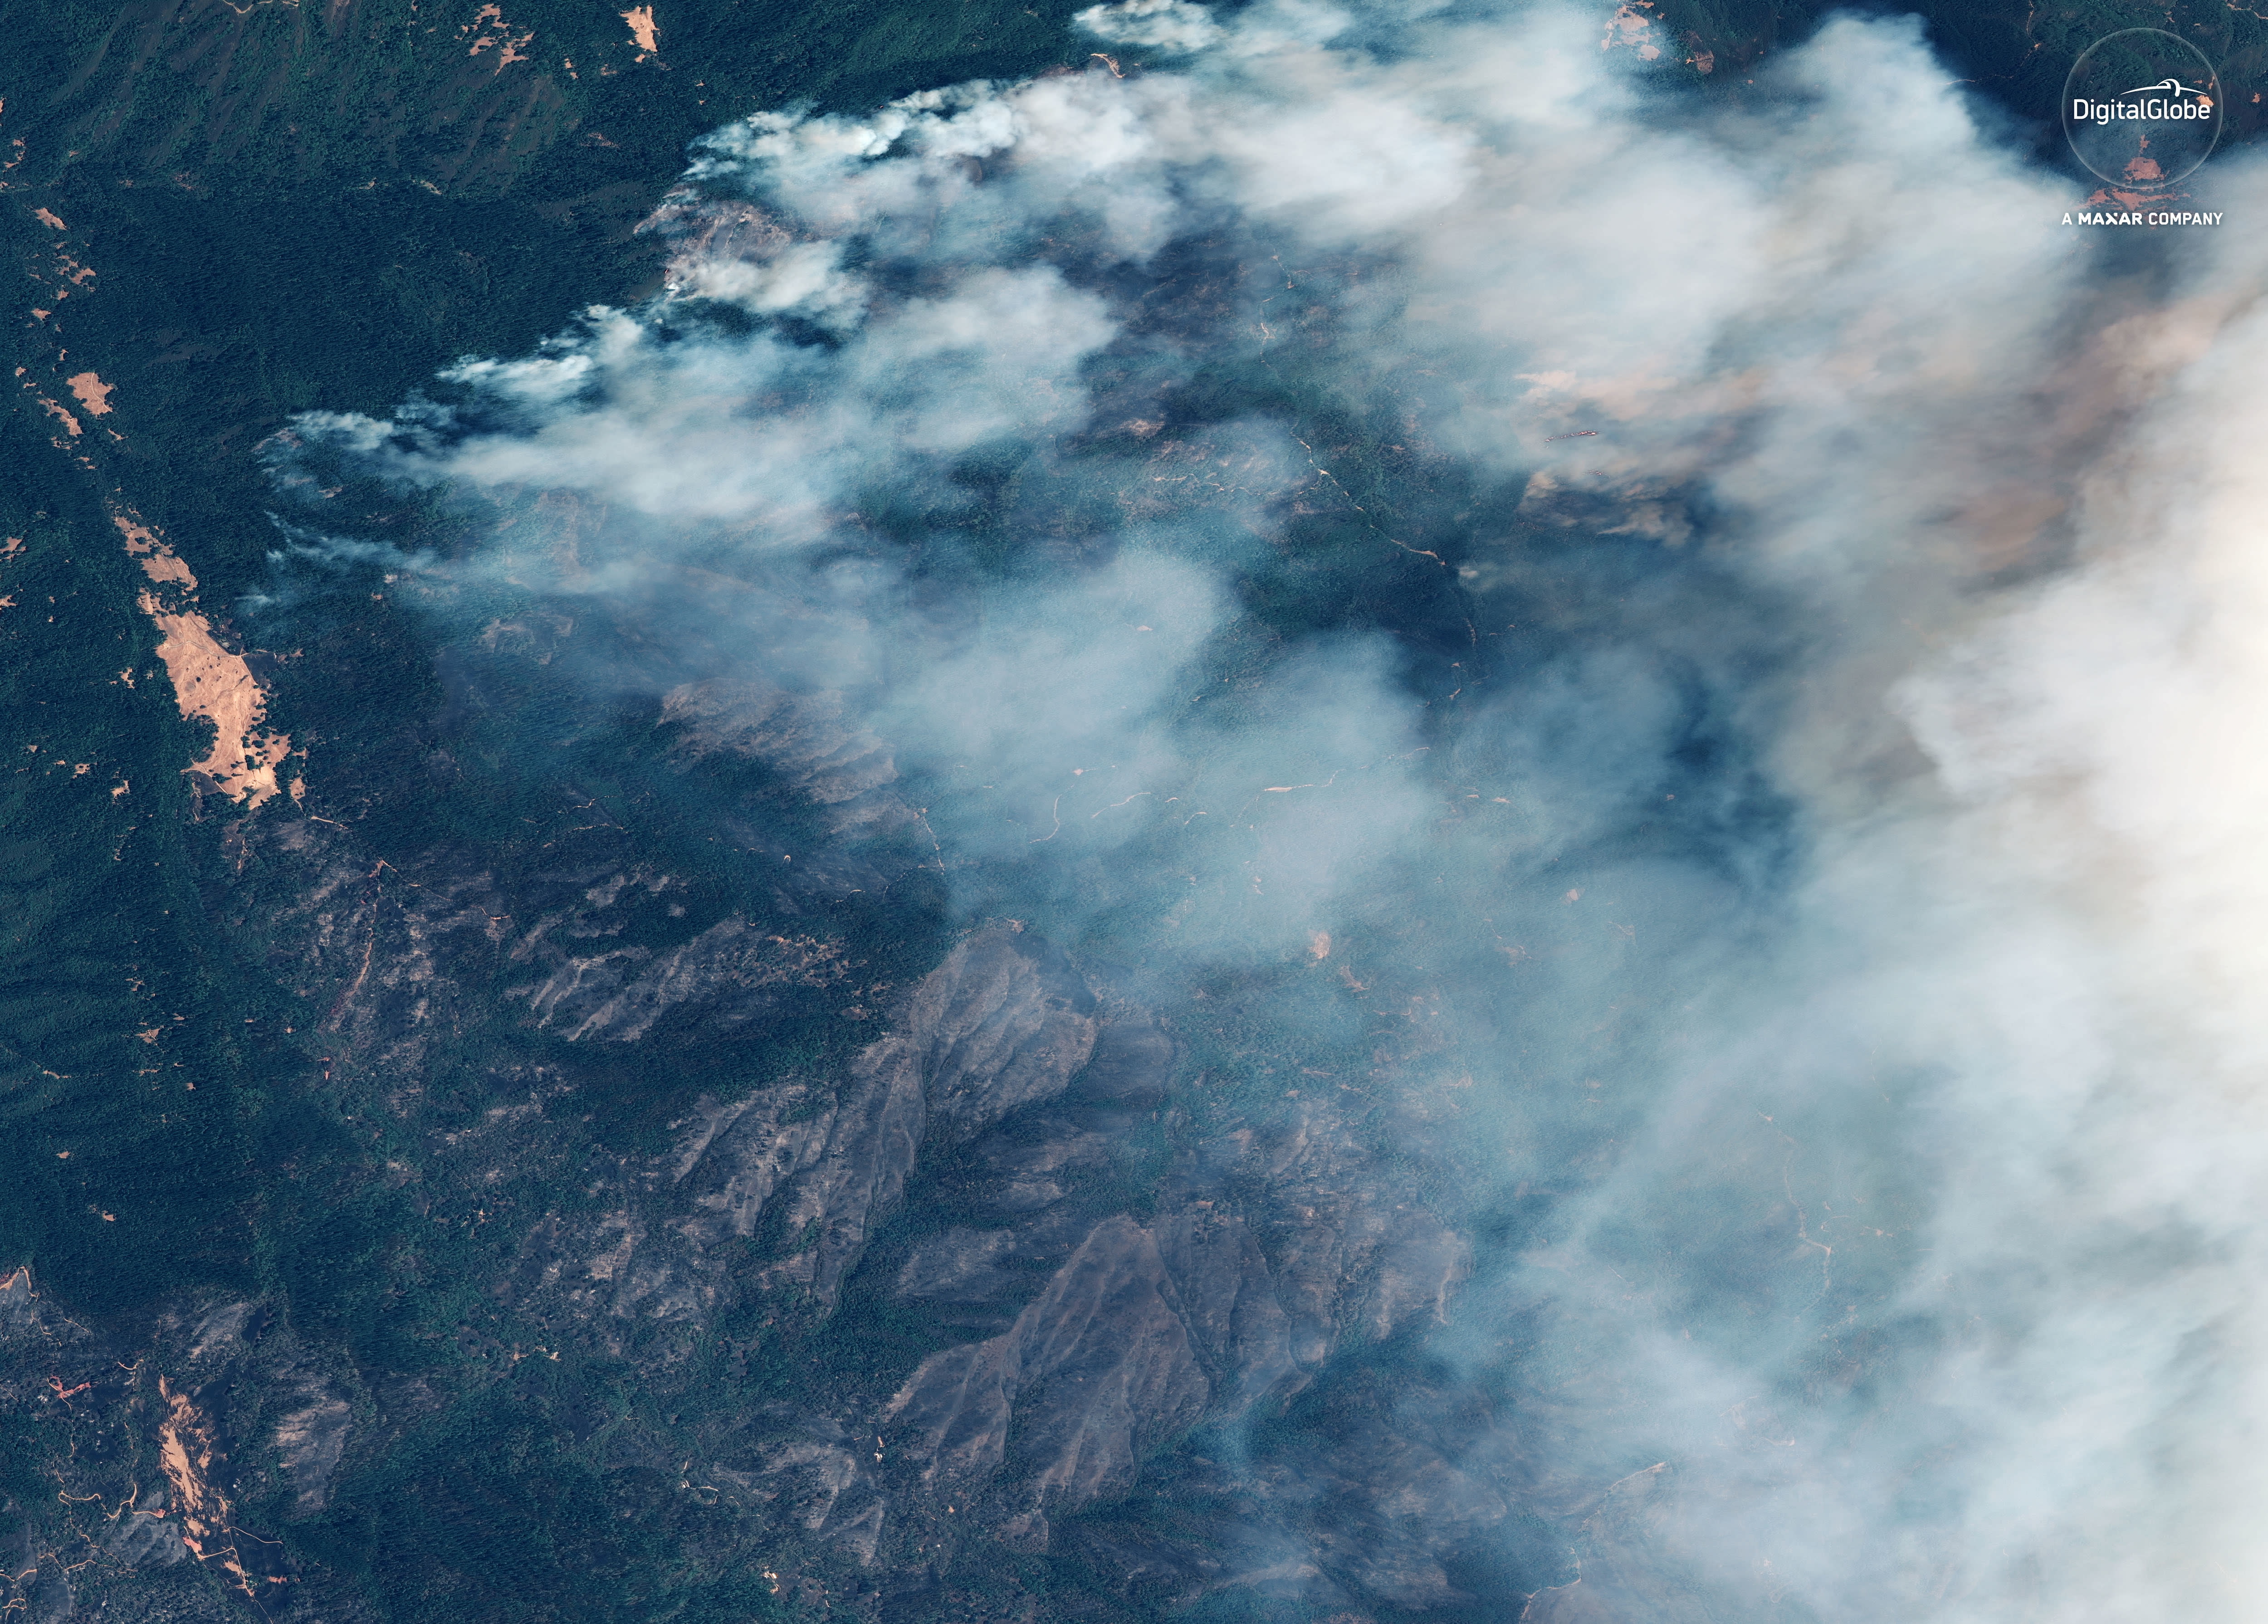 """This Monday, Aug. 6, 2018 satellite image provided by DigitalGlobe shows plumes of smoke from the """"Ranch Fire"""" north of Clear Lake, Calif. The dark brown areas show burned vegetation. (Satellite Image ©2018 DigitalGlobe, a Maxar company, via AP)"""